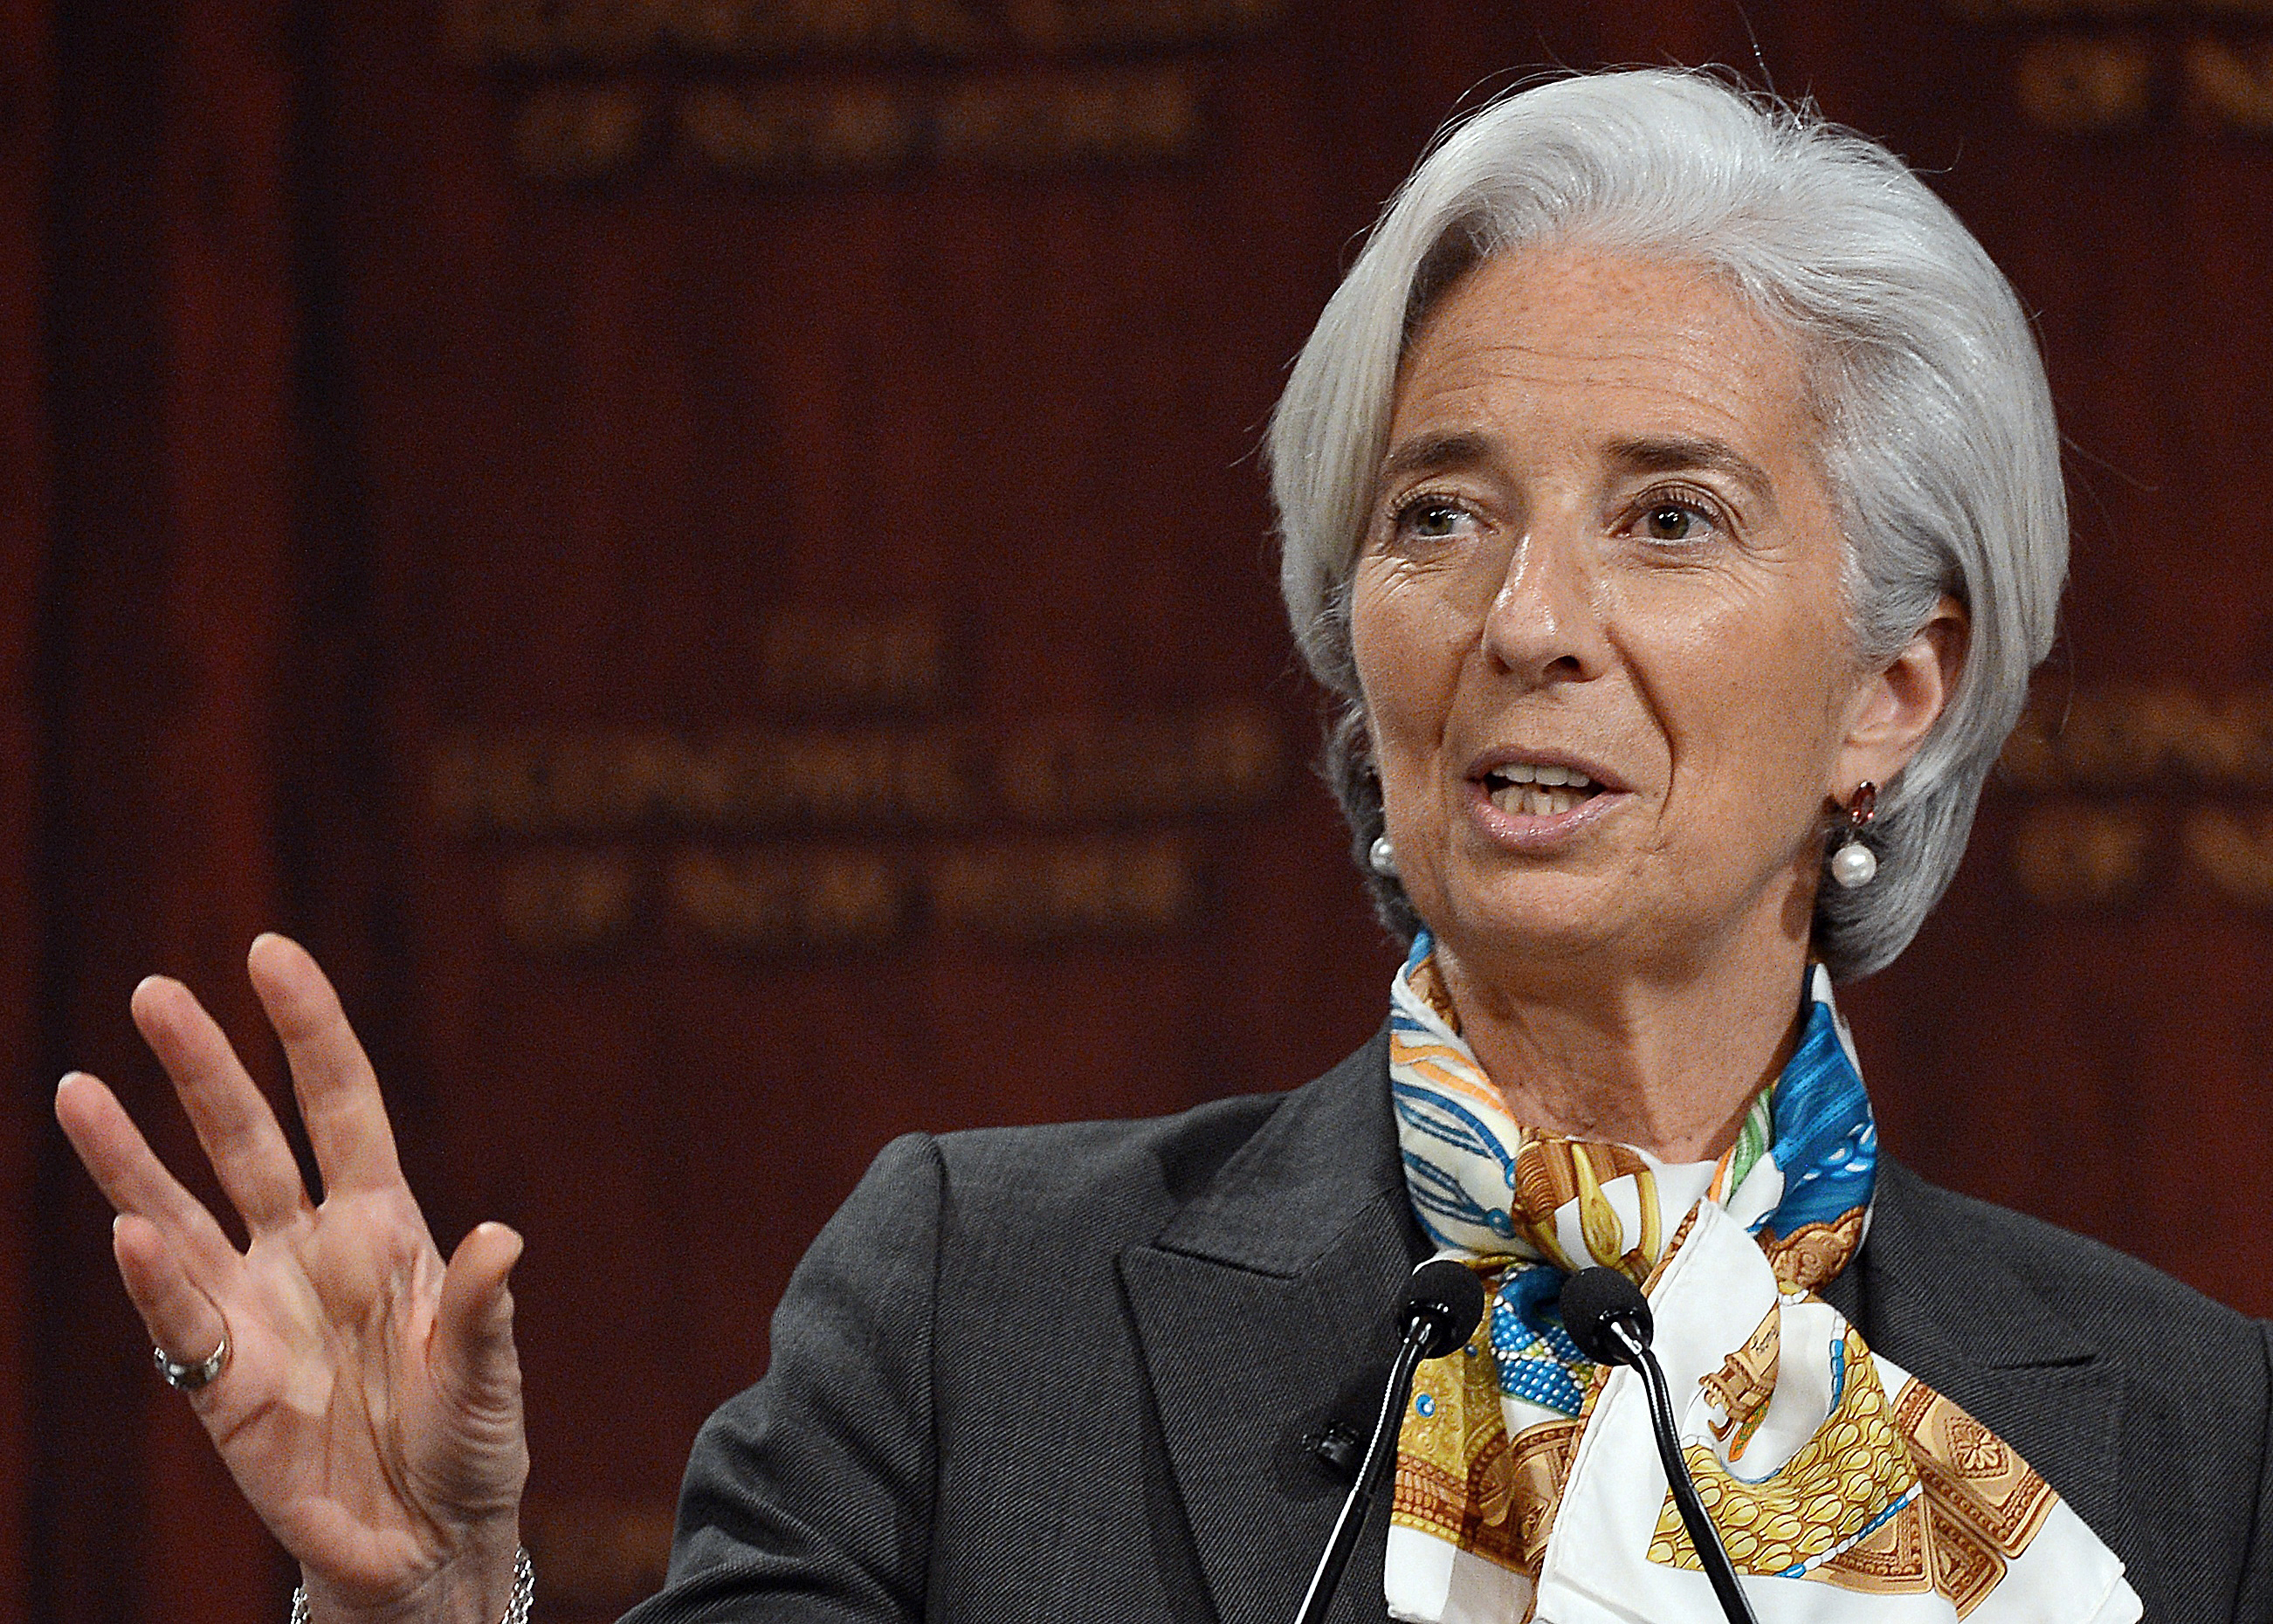 IMF Officially Adds Chinese Currency to Reserve Basket